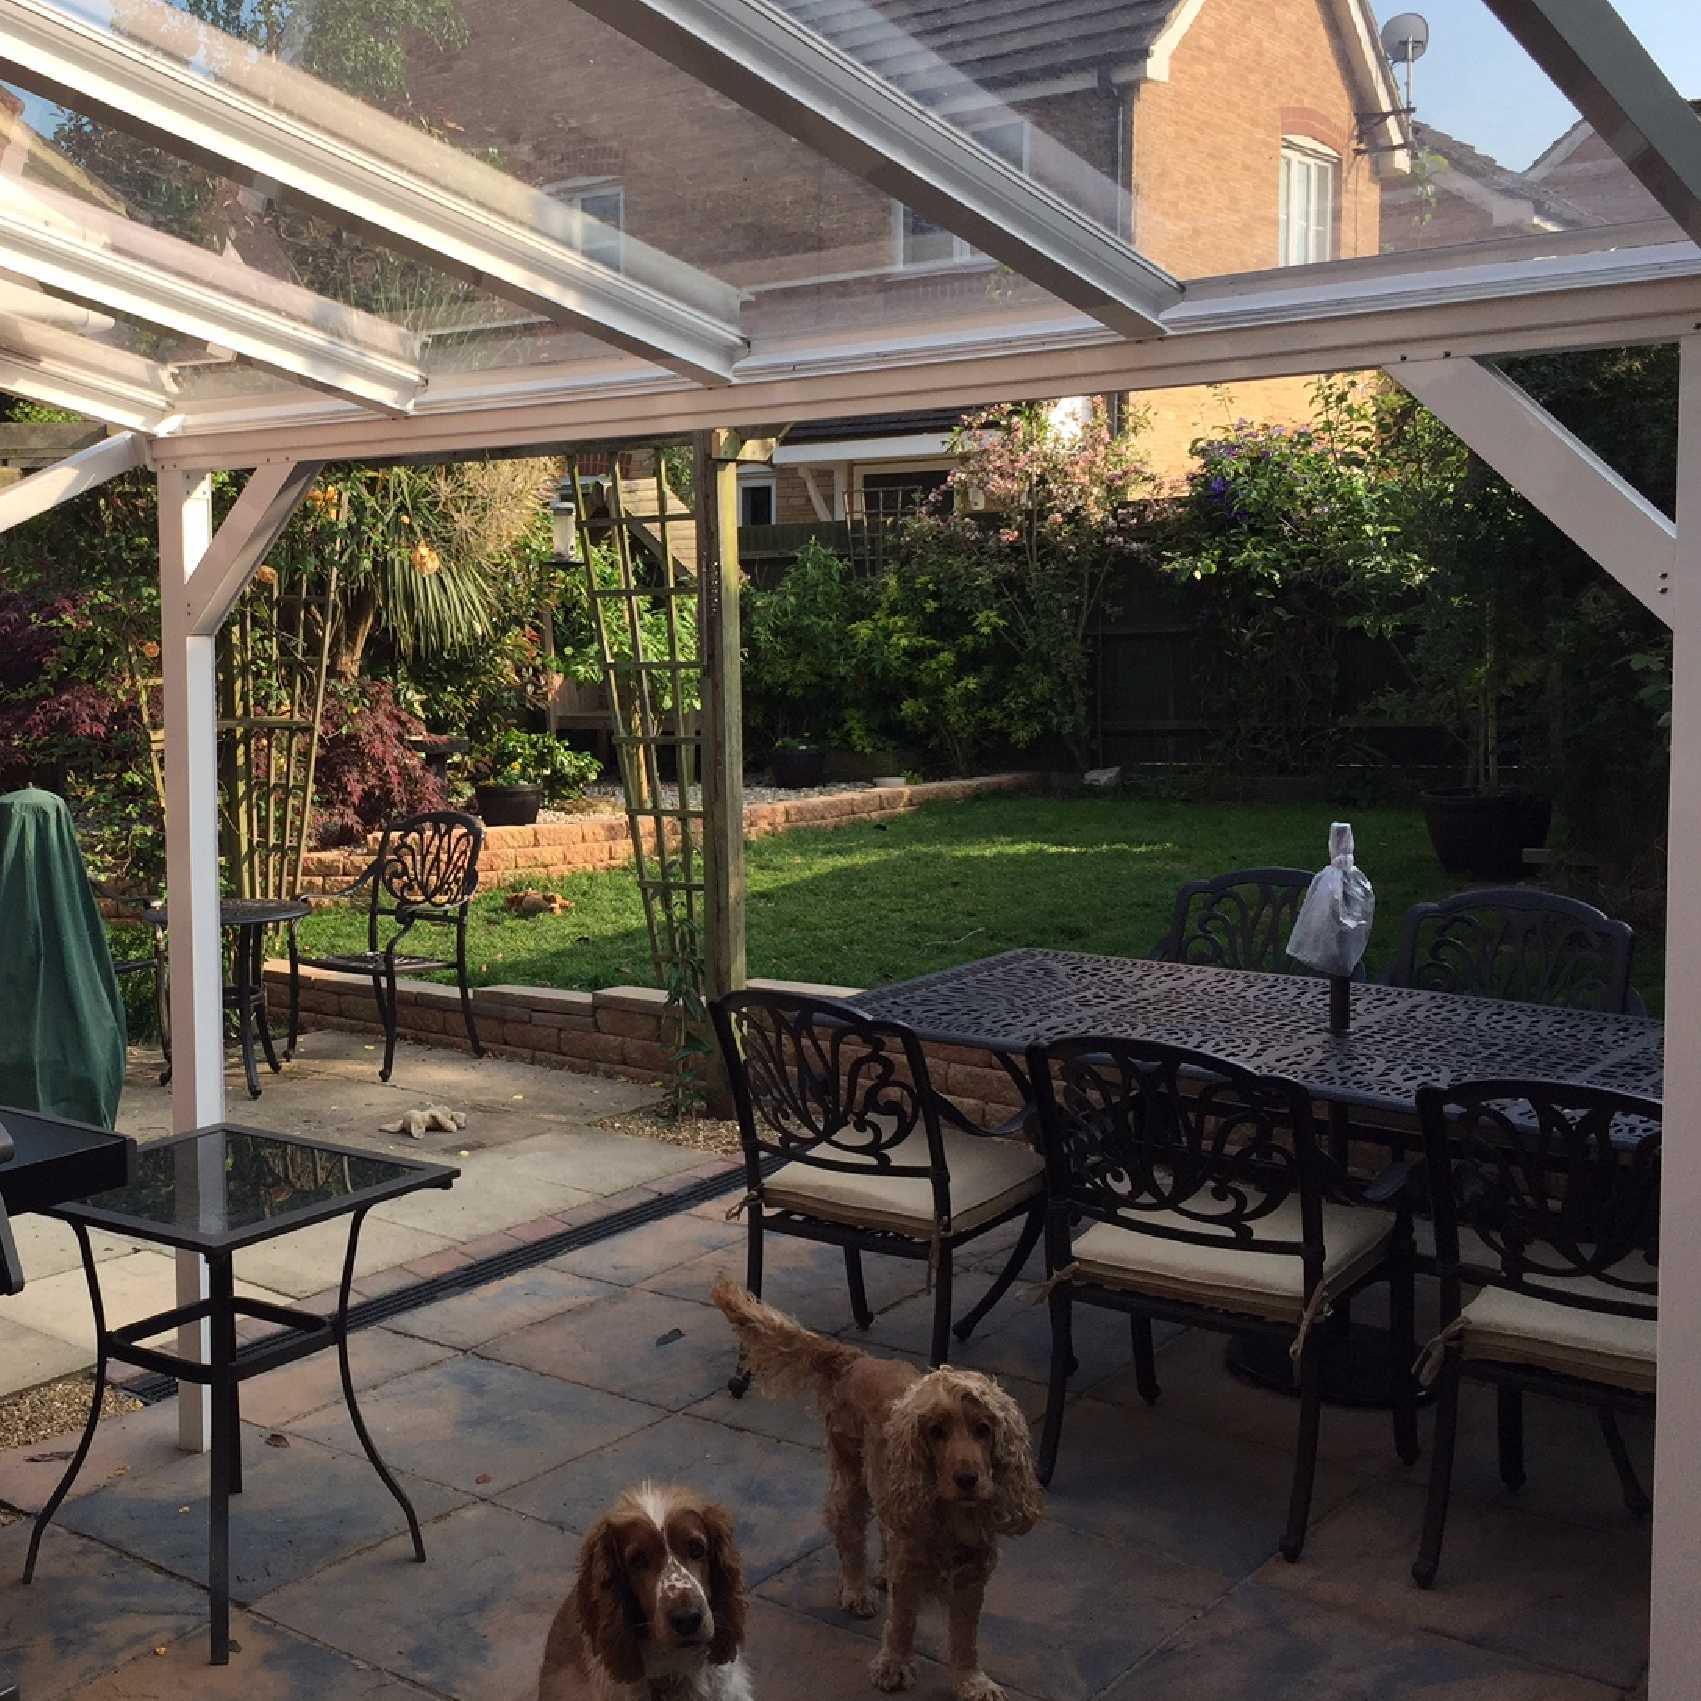 Affordable Omega Smart Lean-To Canopy with 6mm Glass Clear Plate Polycarbonate Glazing - 4.2m (W) x 3.5m (P), (3) Supporting Posts